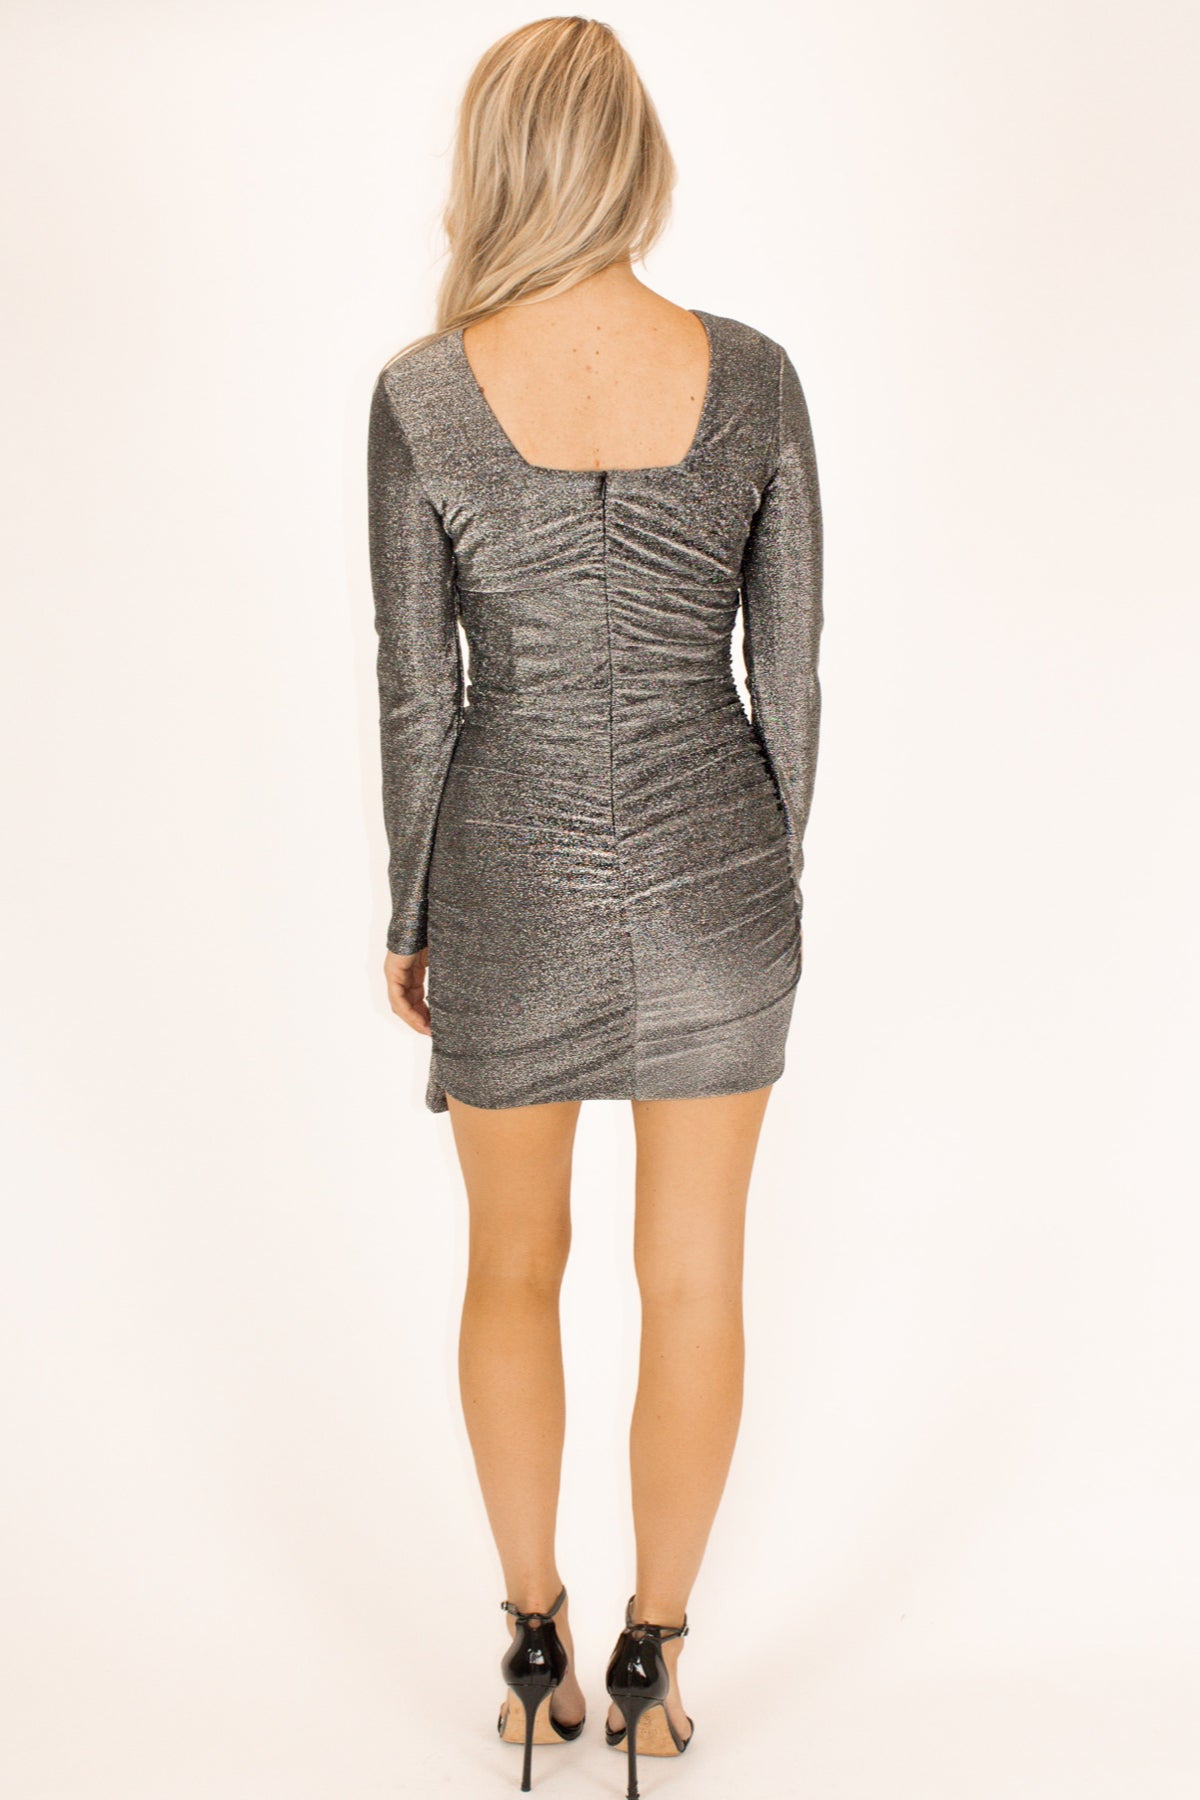 SILVER SHIMMER STATEMENT MINI